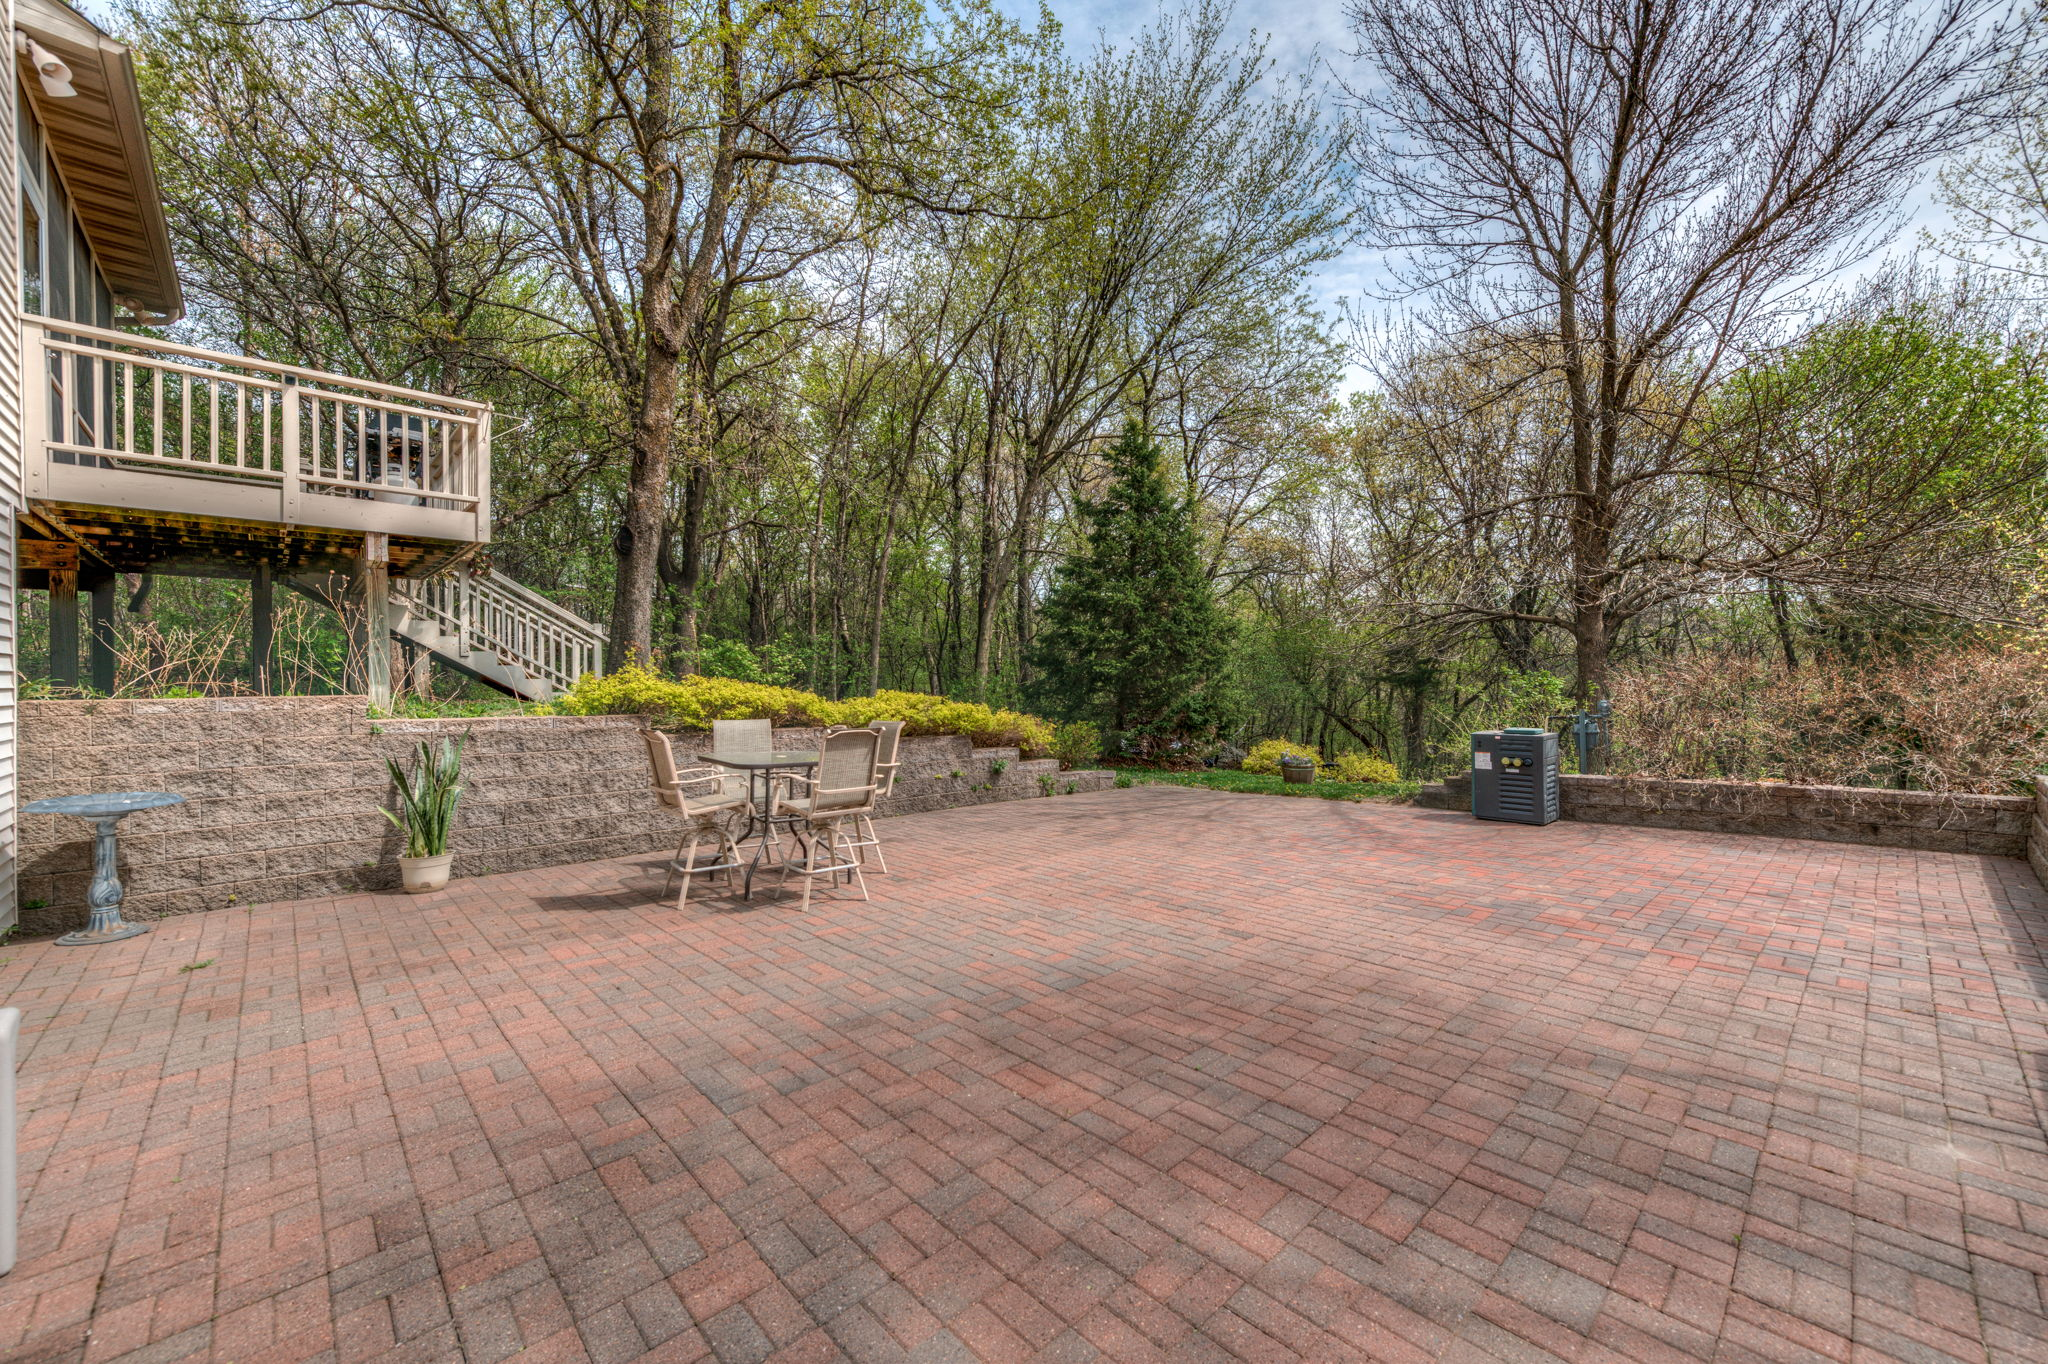 Large inlay brick patio for pool, hot tub, pizza oven... so many options!